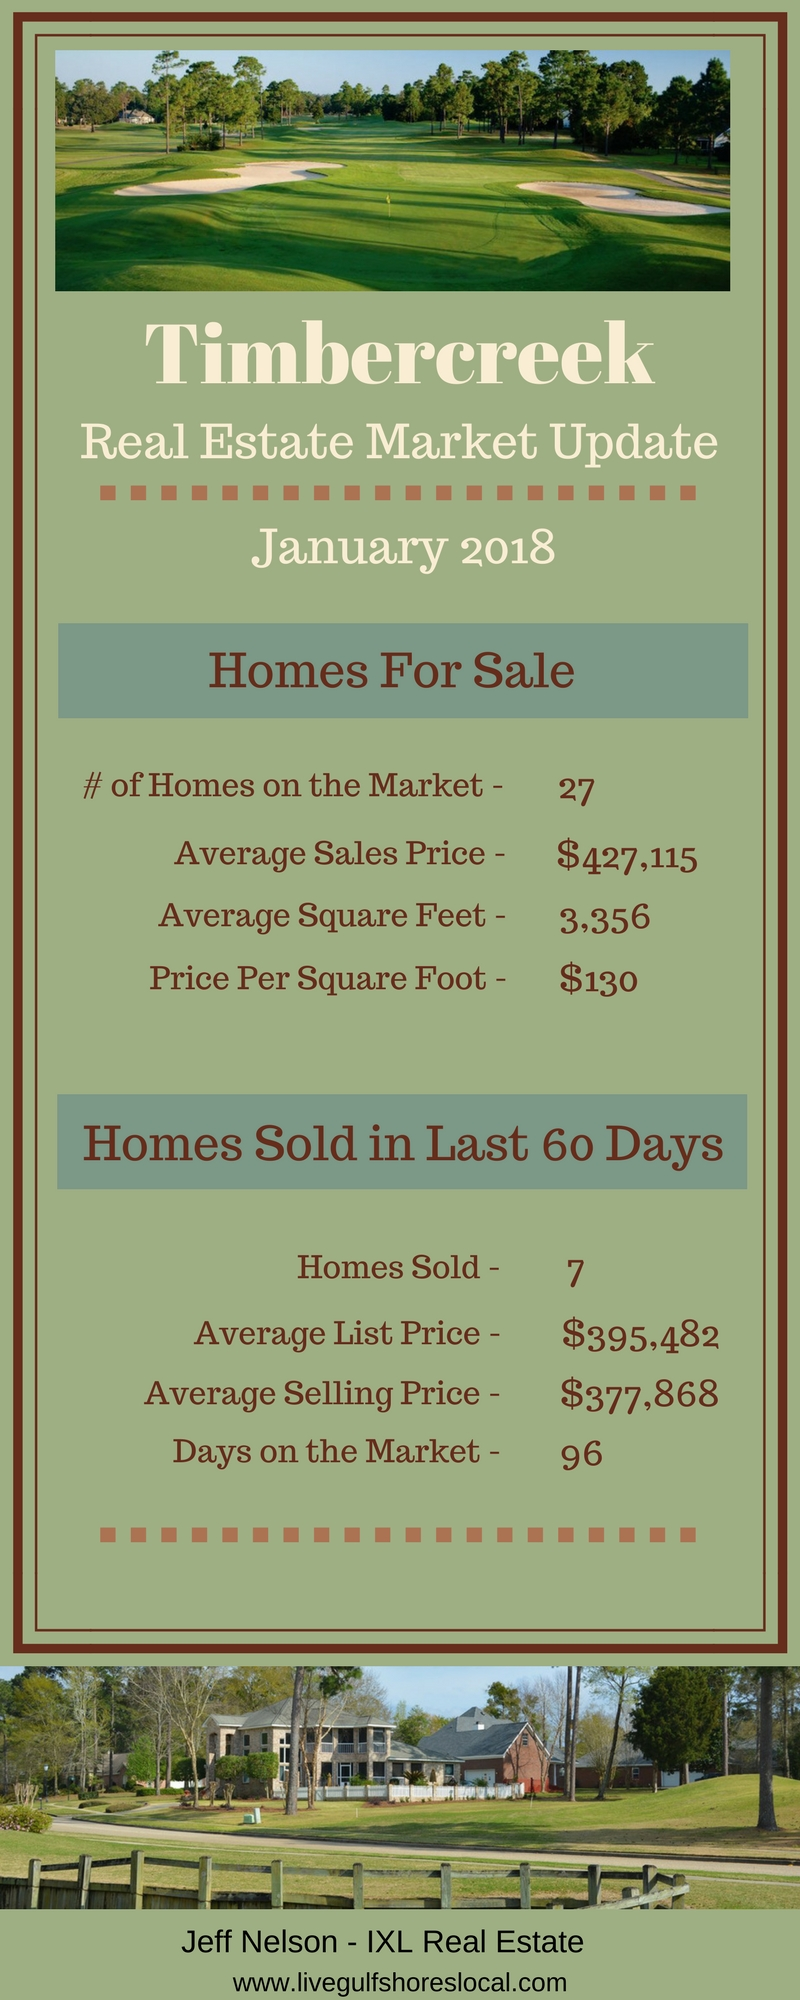 Timbercreek Real Estate Market Update - January 2018